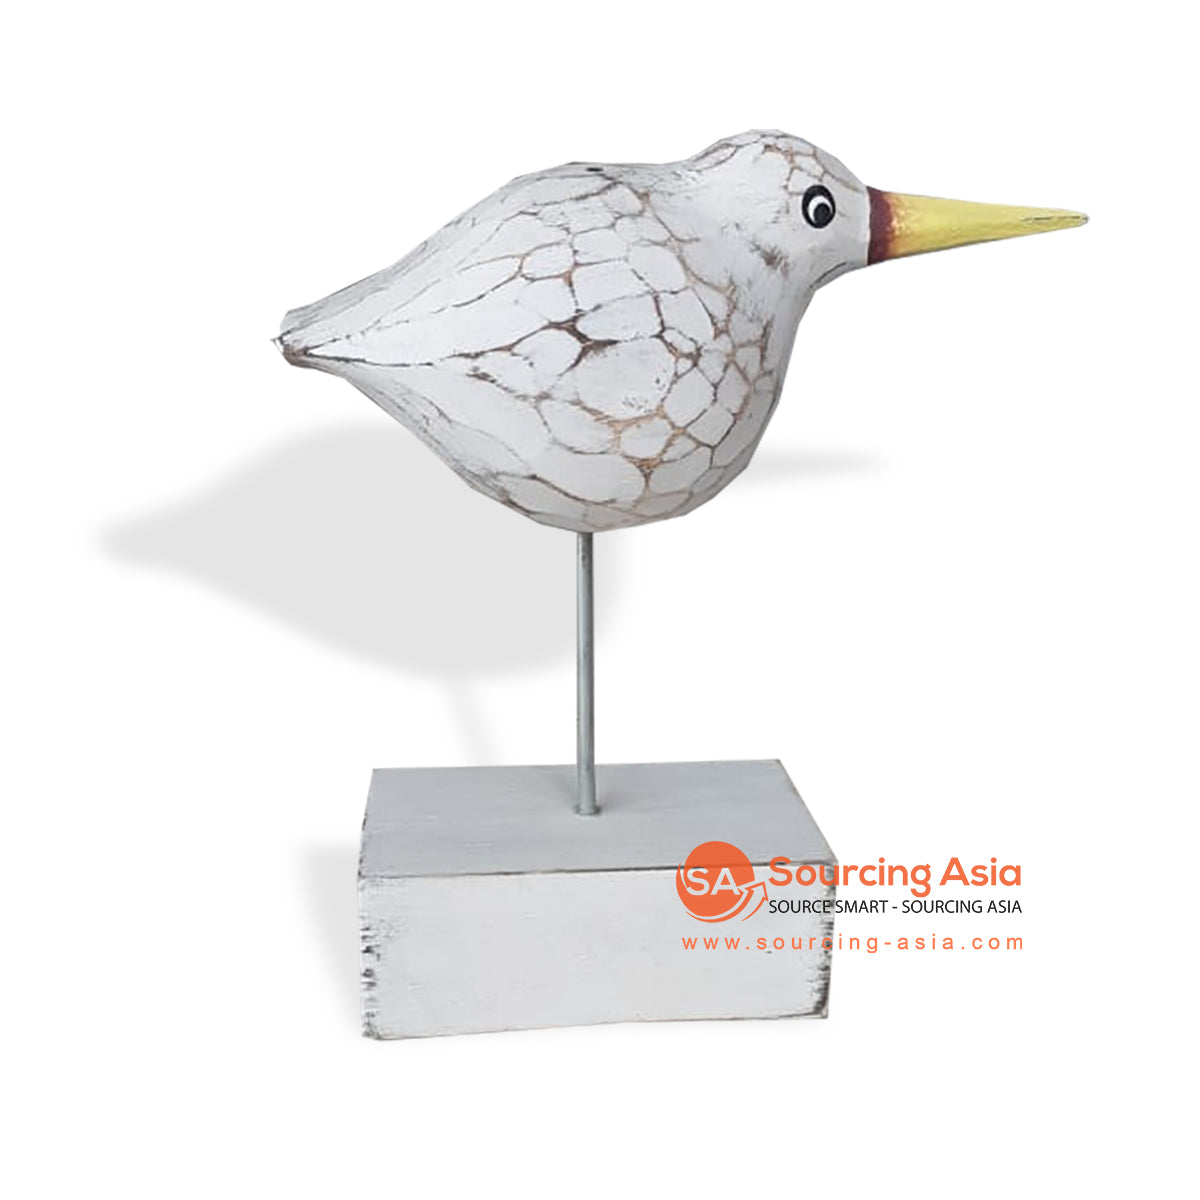 SLG007 WOODEN BIRD ON STAND